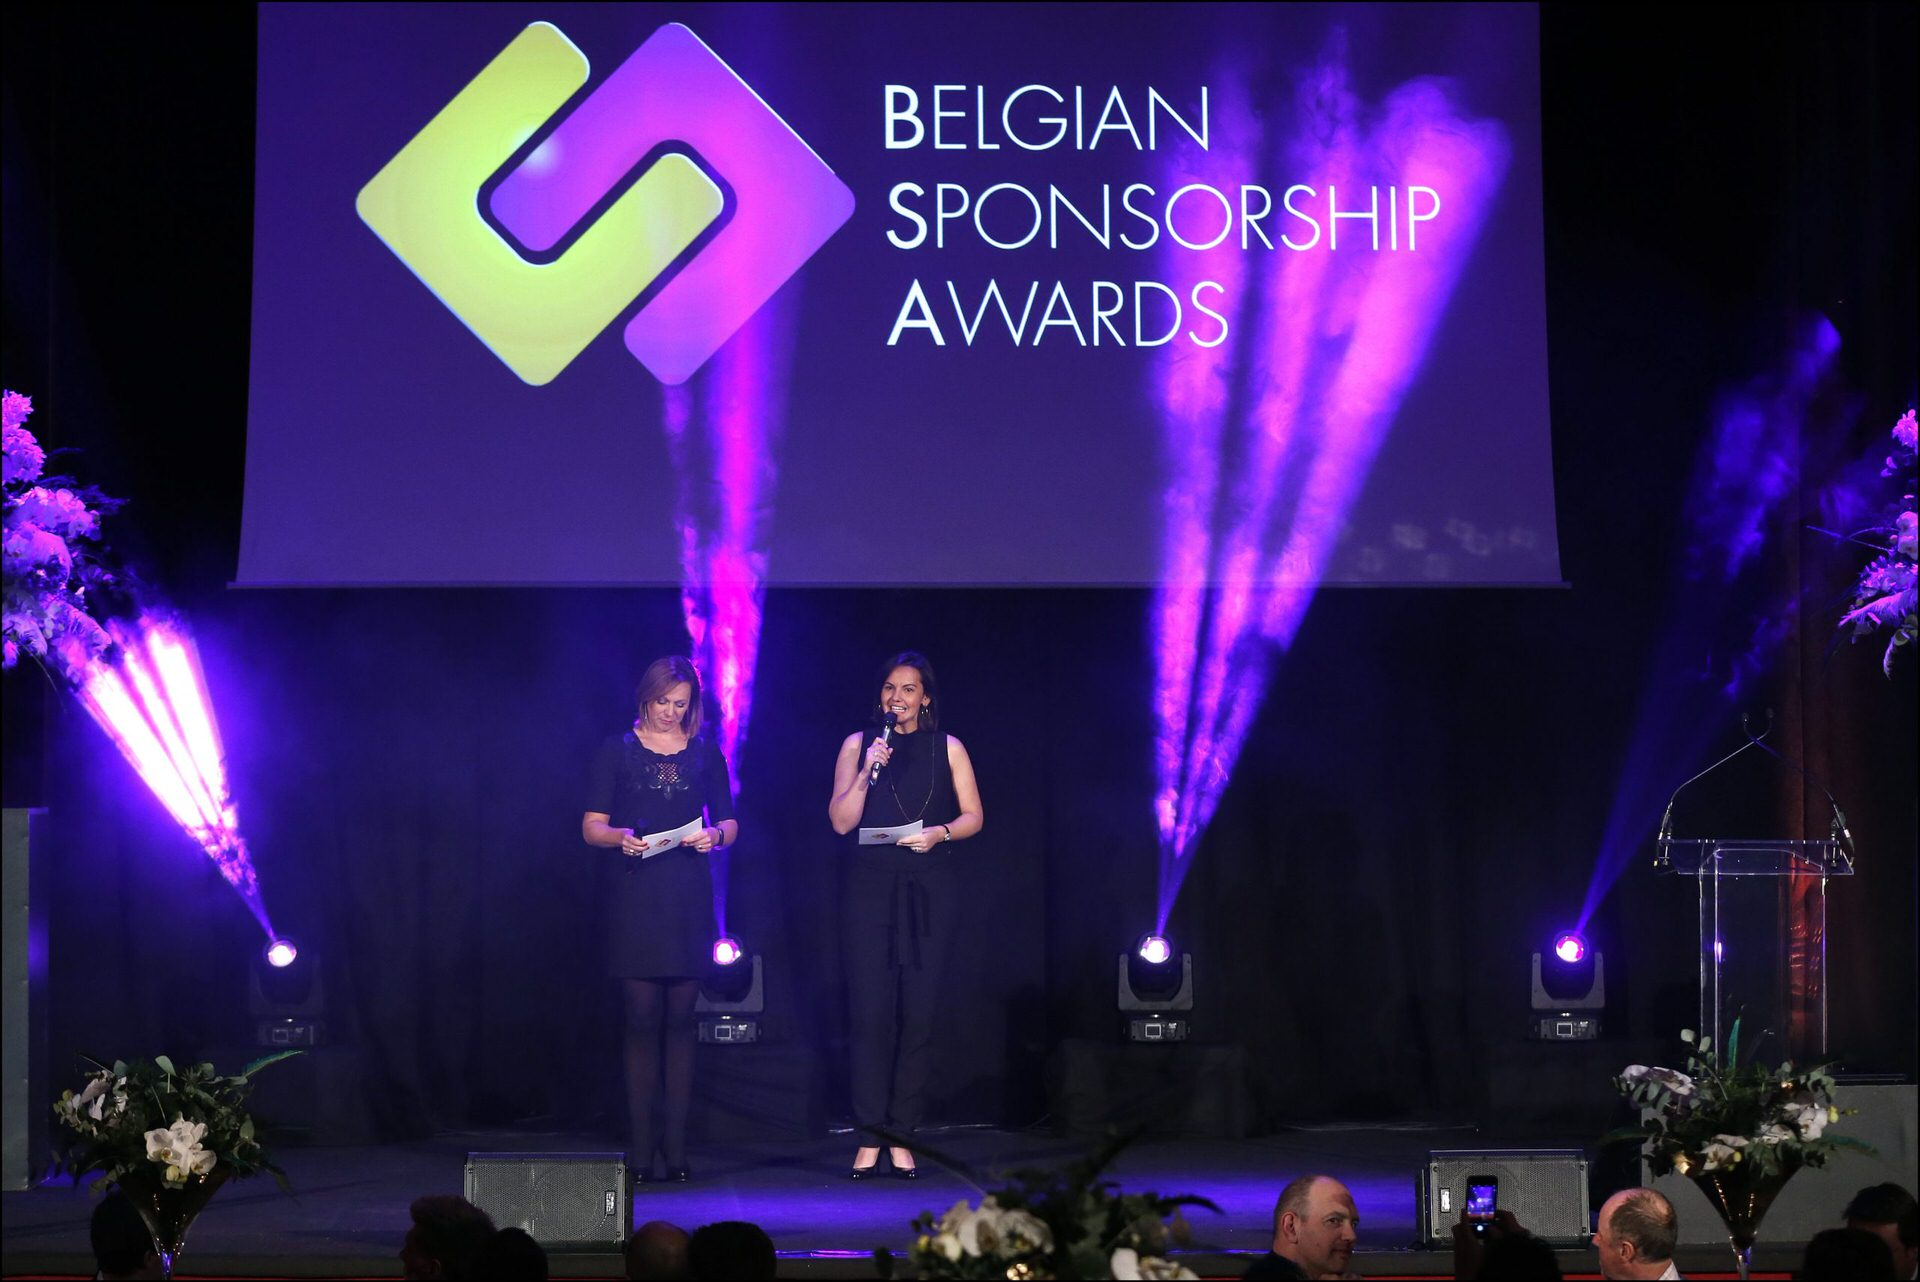 Dominique Monami and Sabine Appelmans on stage during the Belgian Sponsorship awards 2016